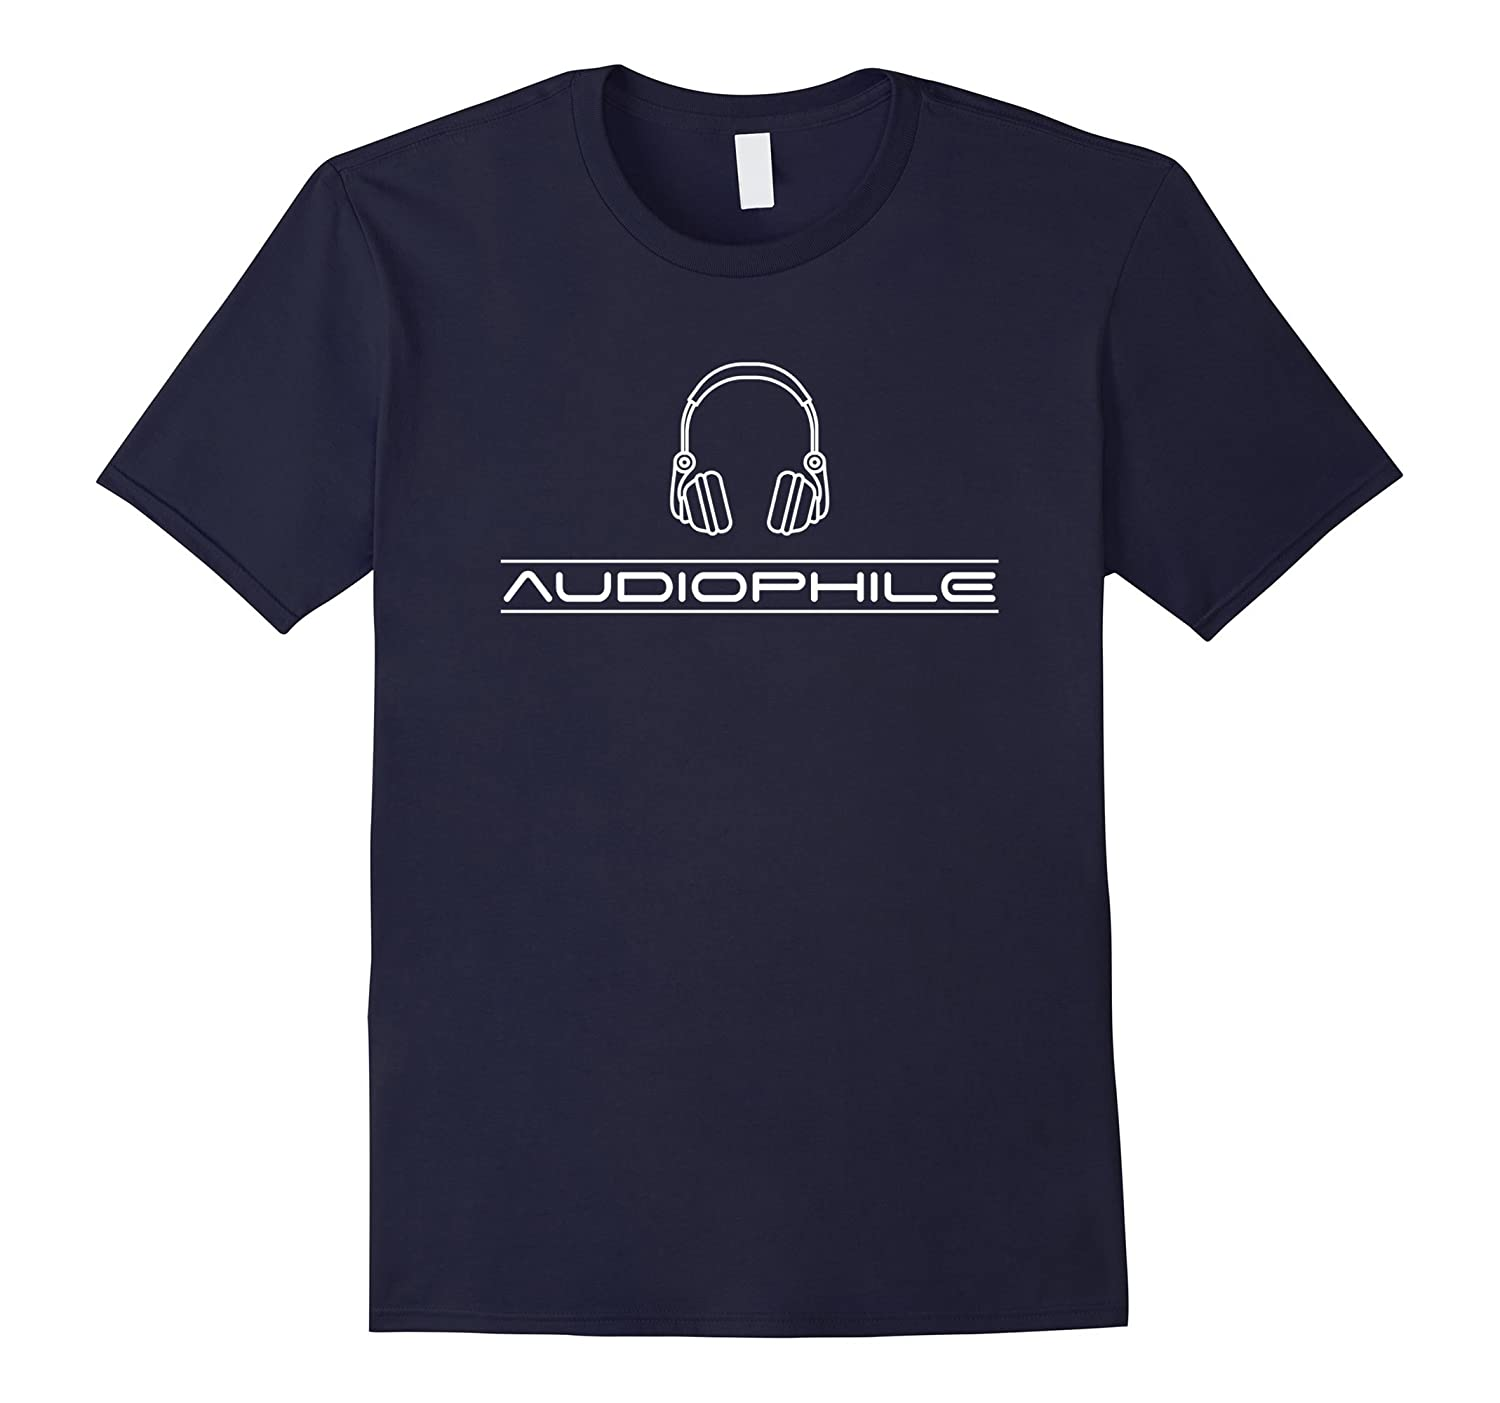 Audiophile T Shirt - Hi Fi Enthusiast, Vinyl Record, Music-FL